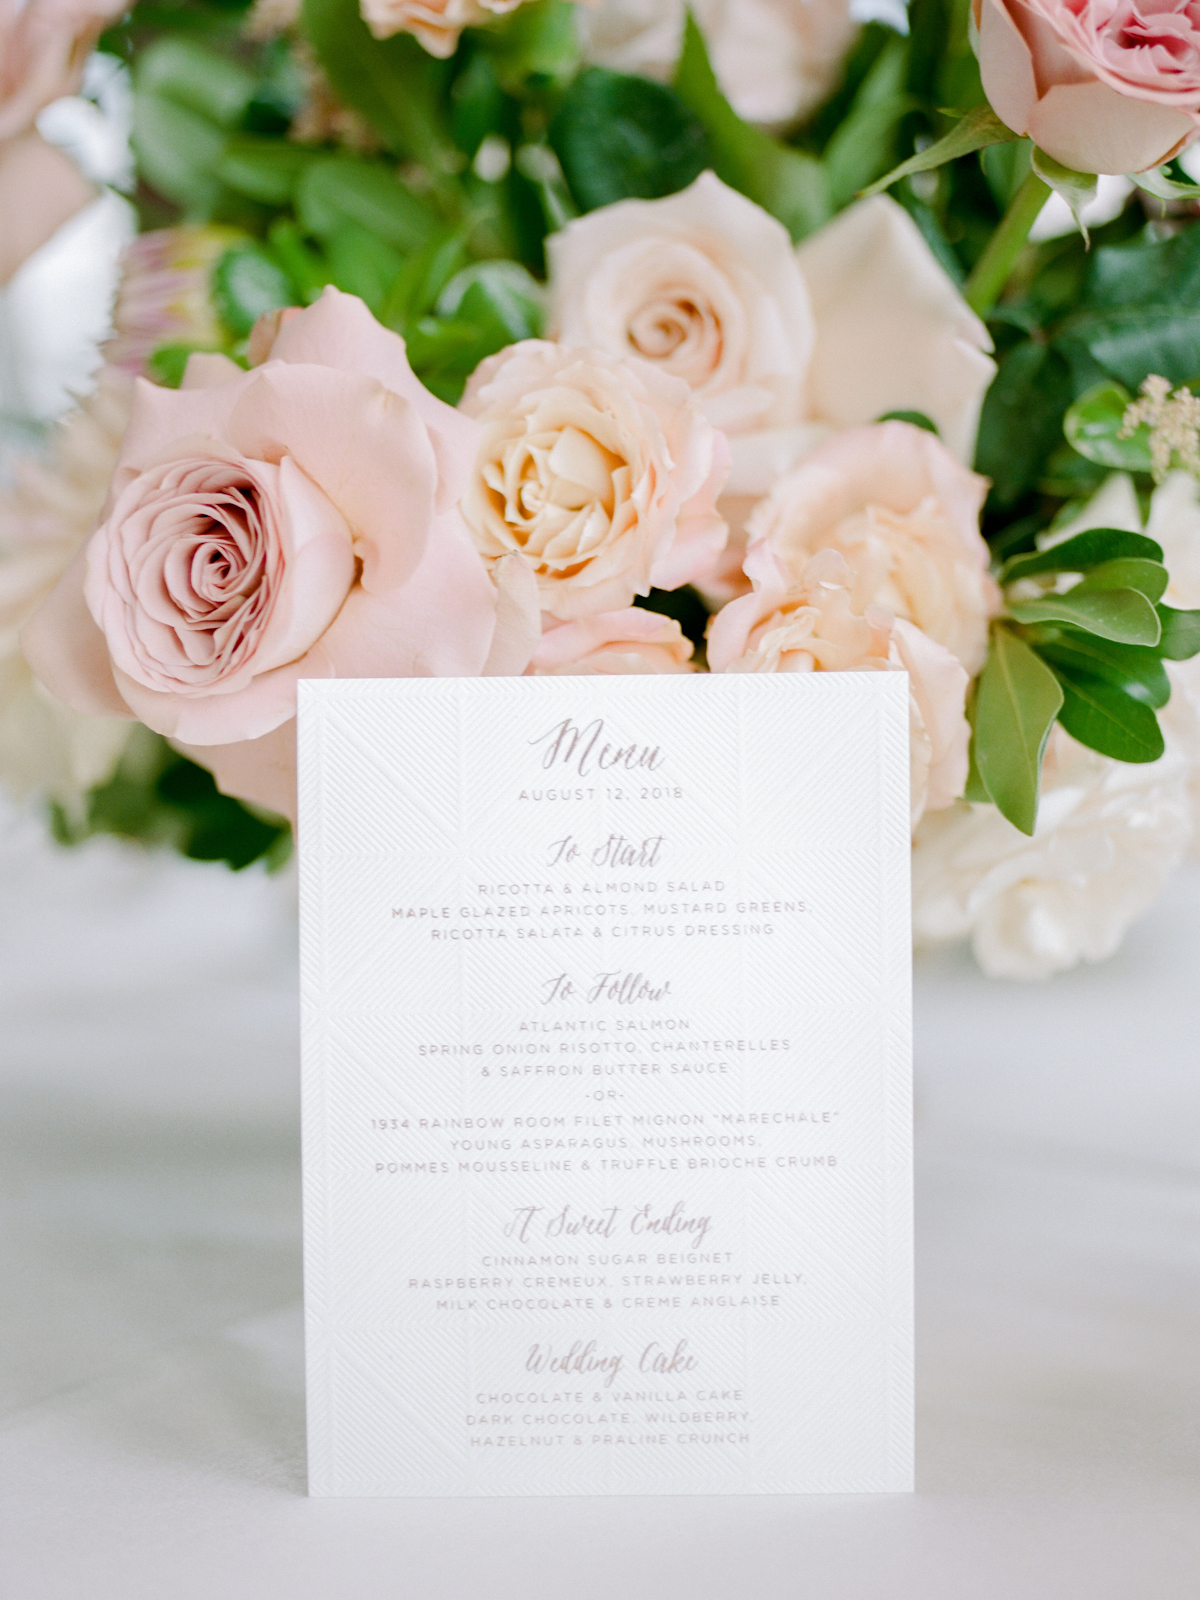 Rainbow Room wedding menu with foil stamped details